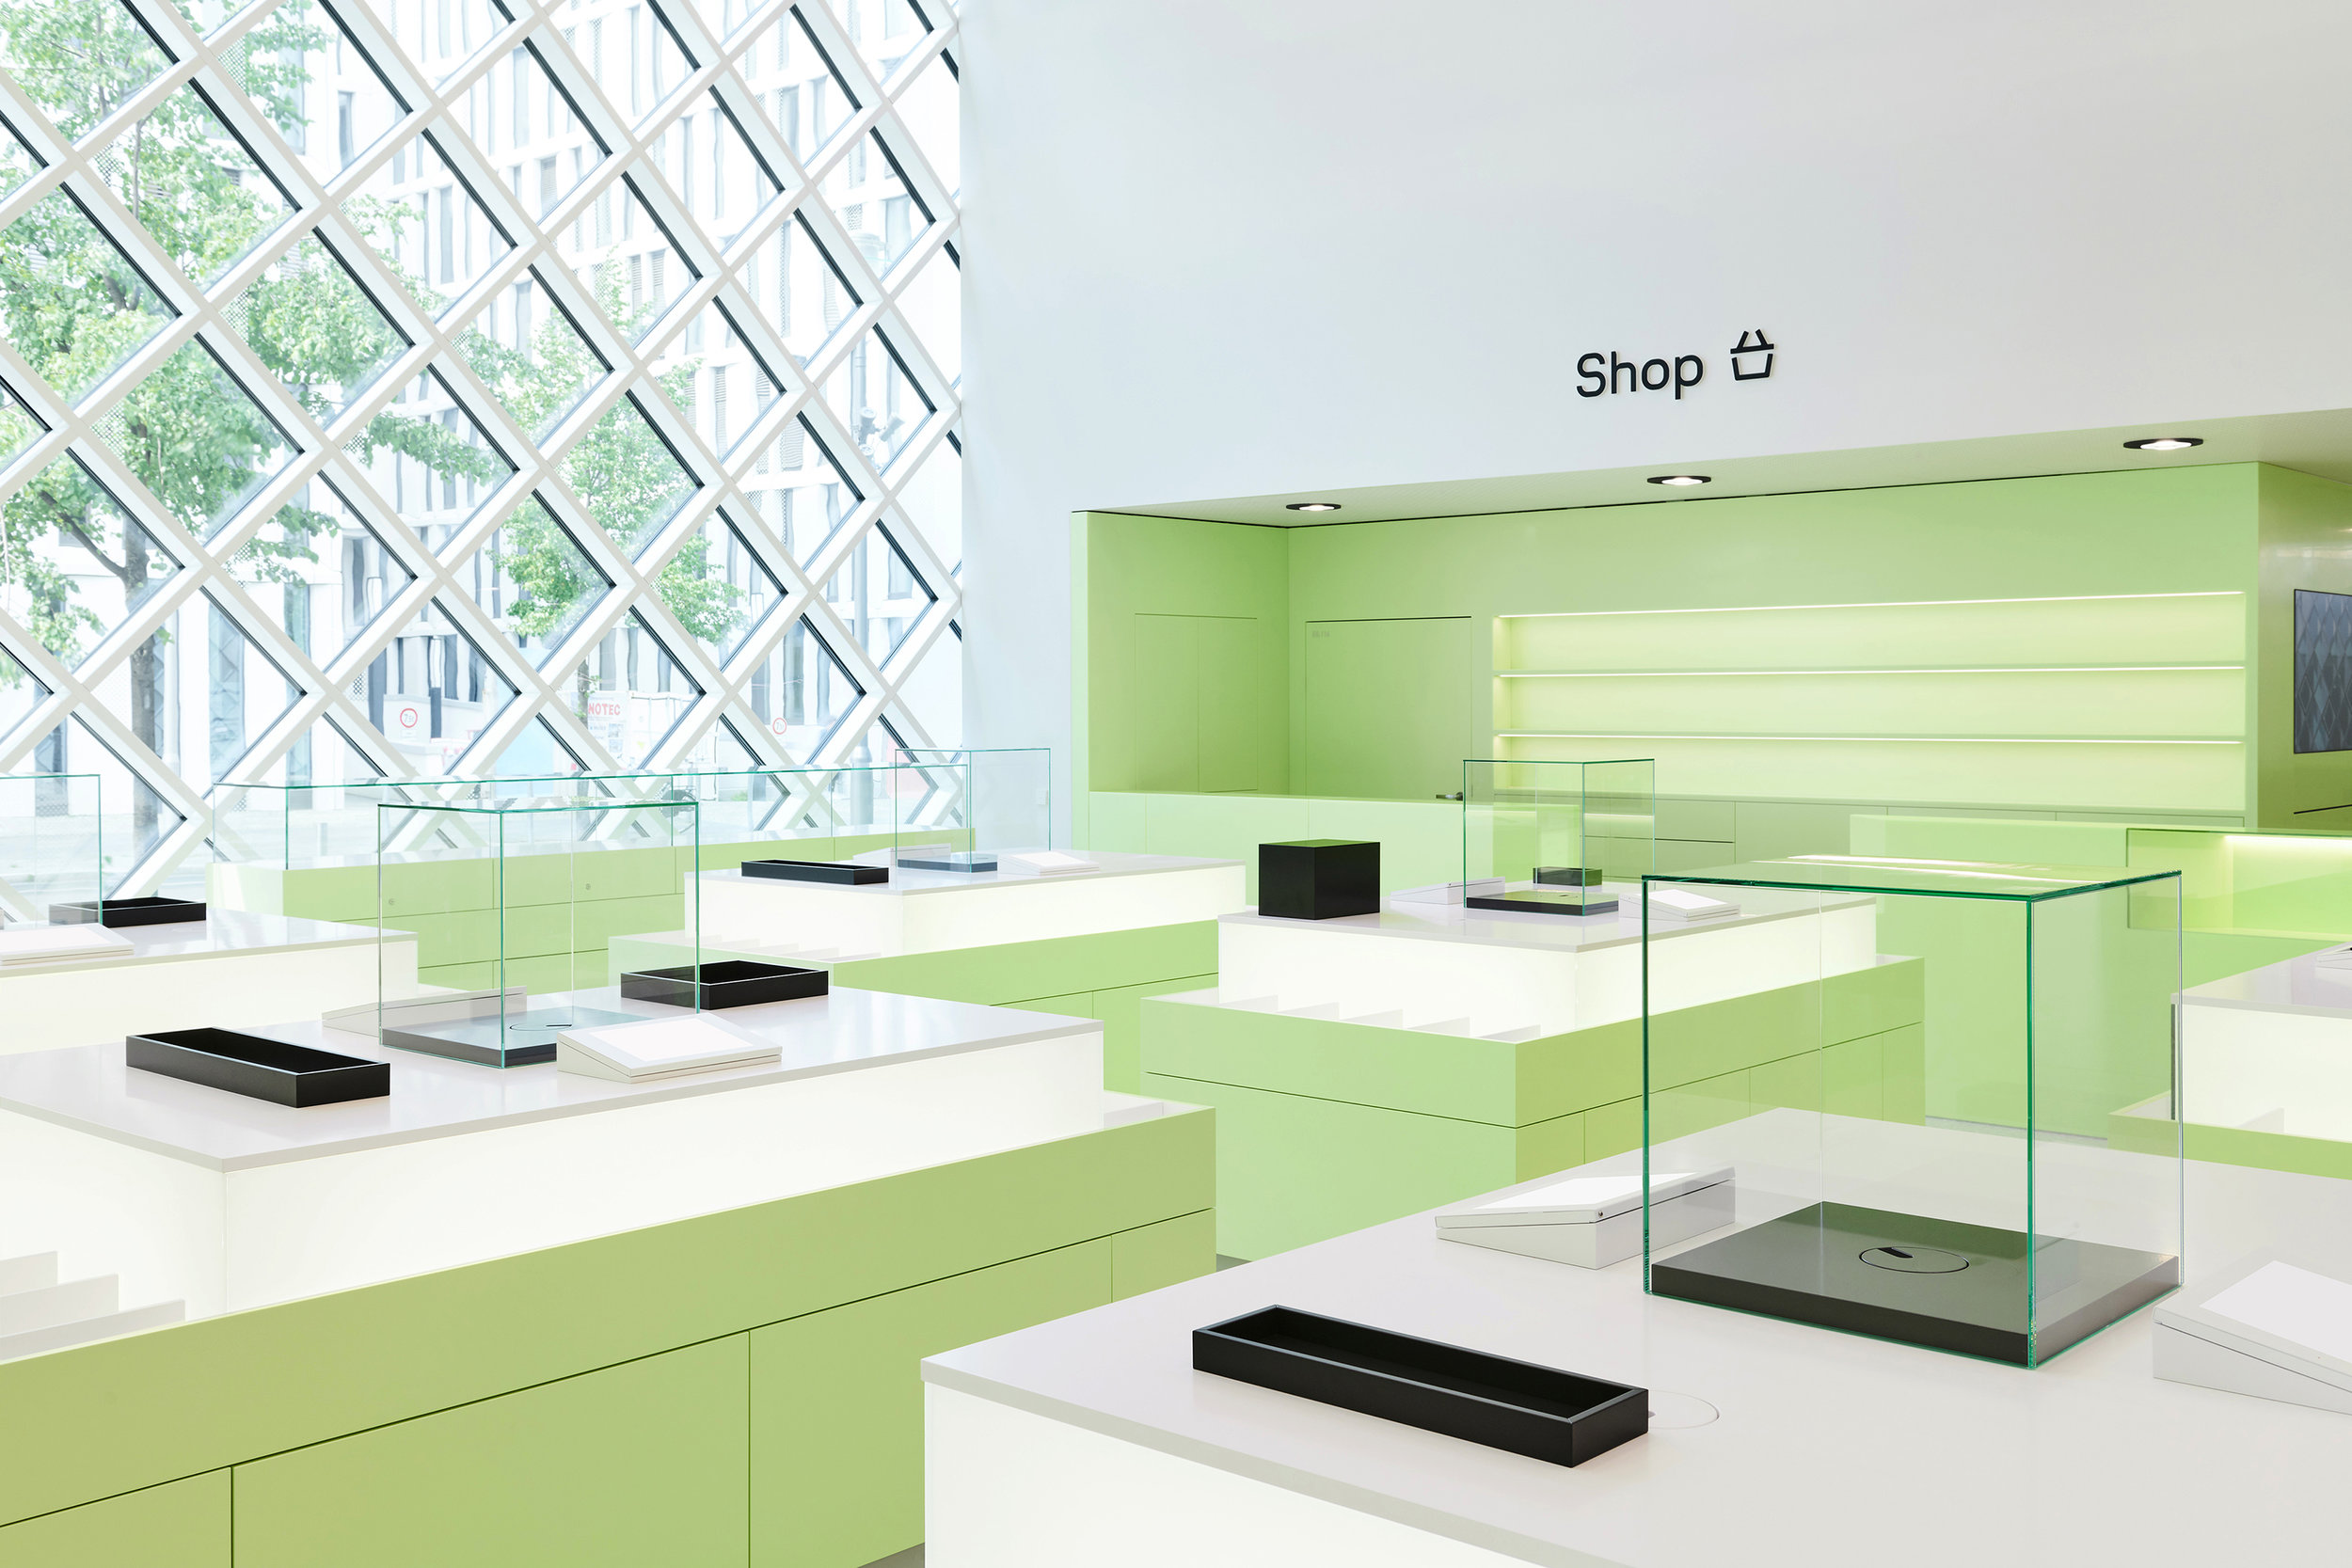 futurium_retail-interior-design_coordination-berlin-05.jpg